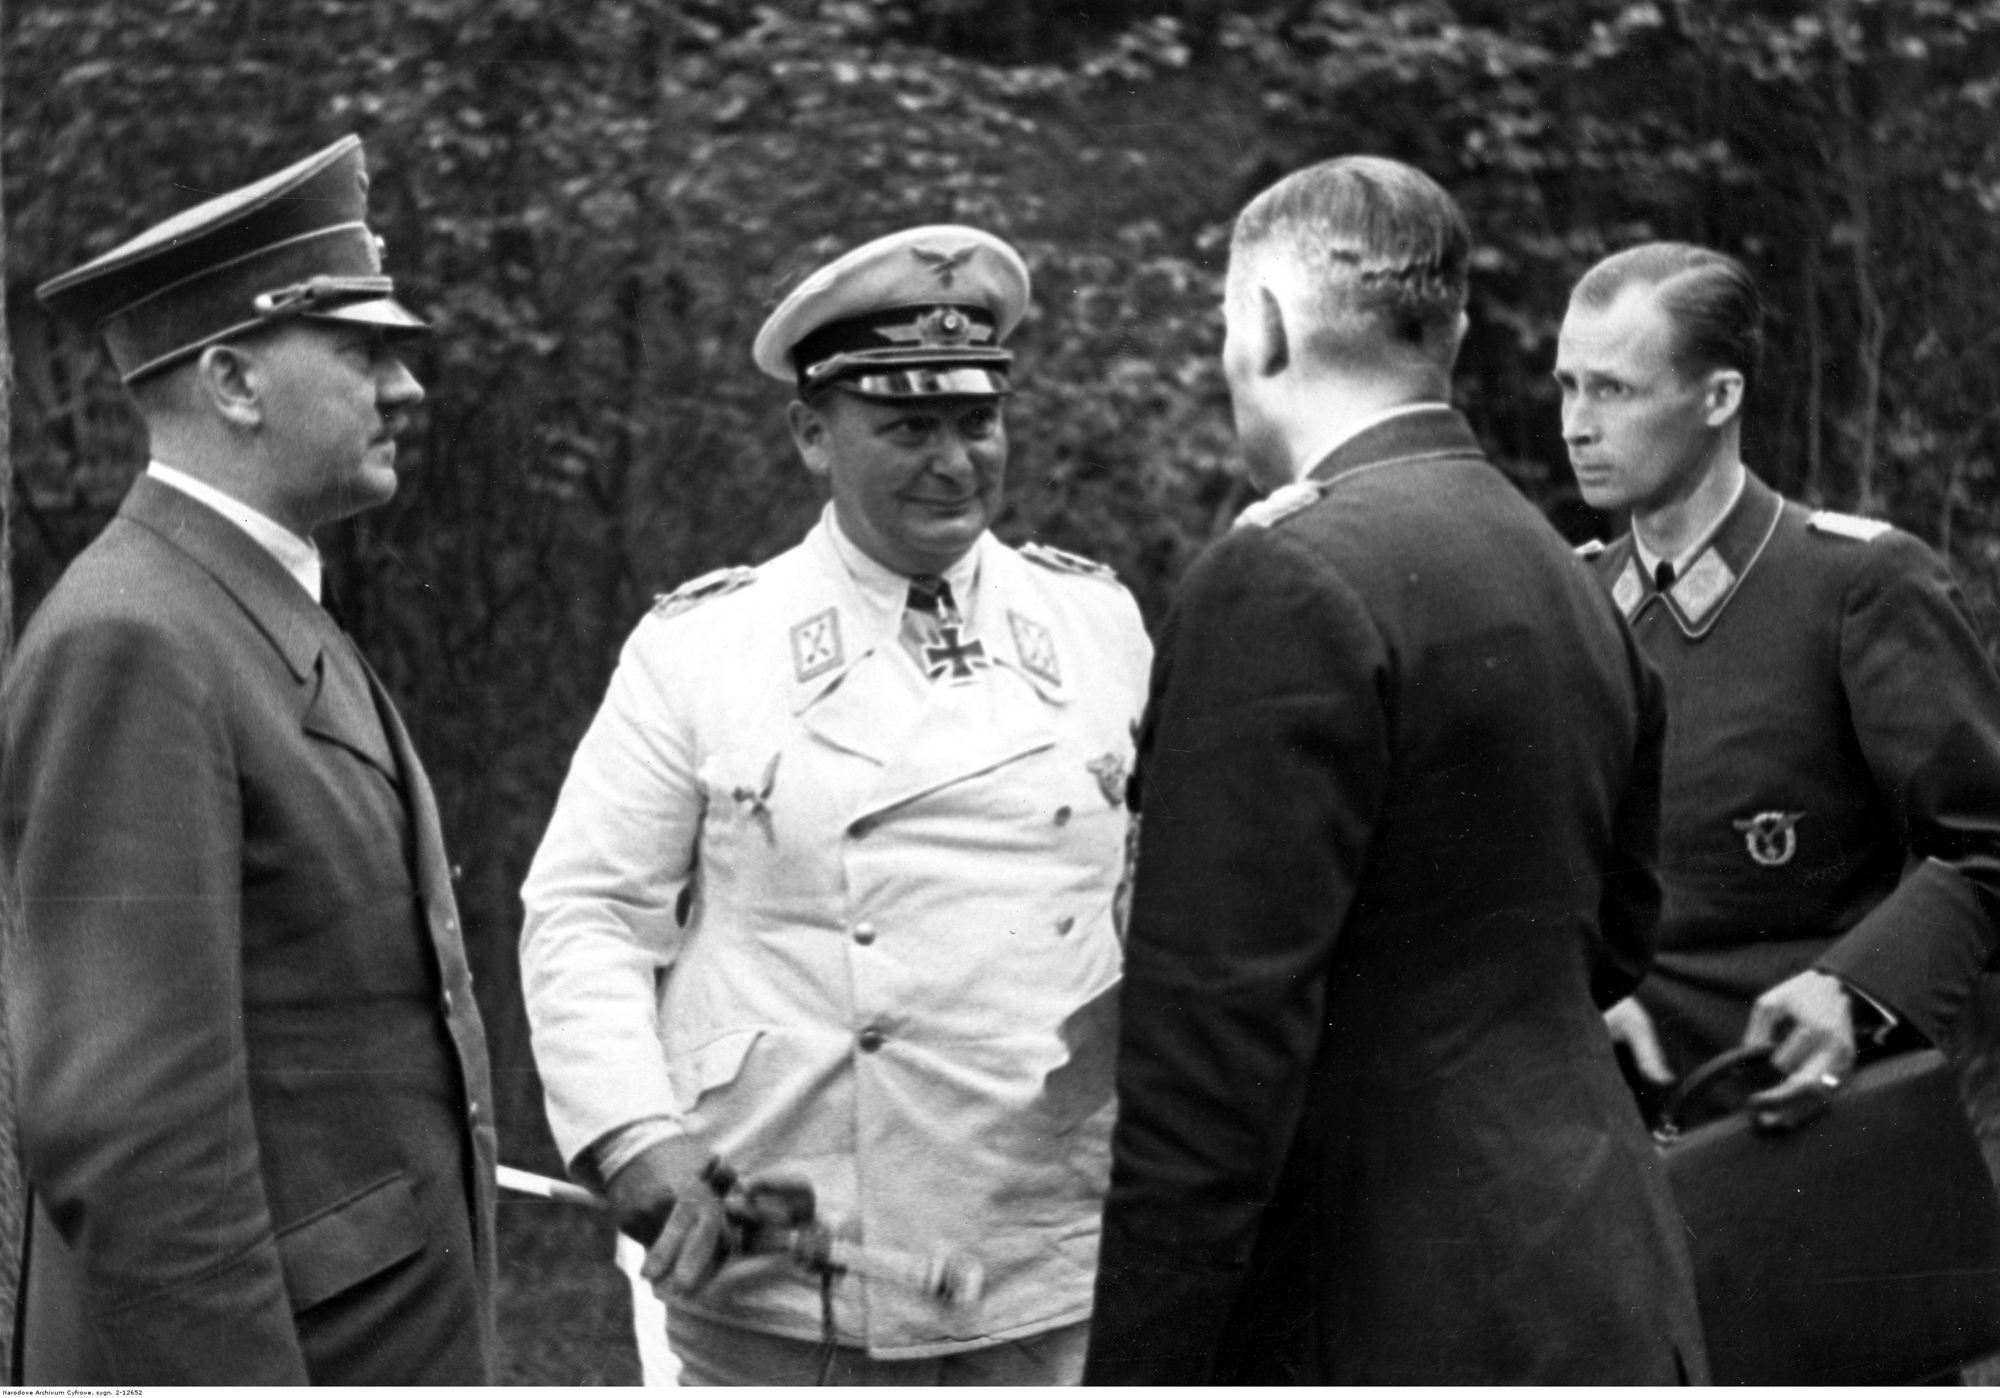 Meeting with Goering and general Karl-Heinrich Bodenschatz, liaison officer between the two leaders of the Party, in the forest of the Wolfschanze